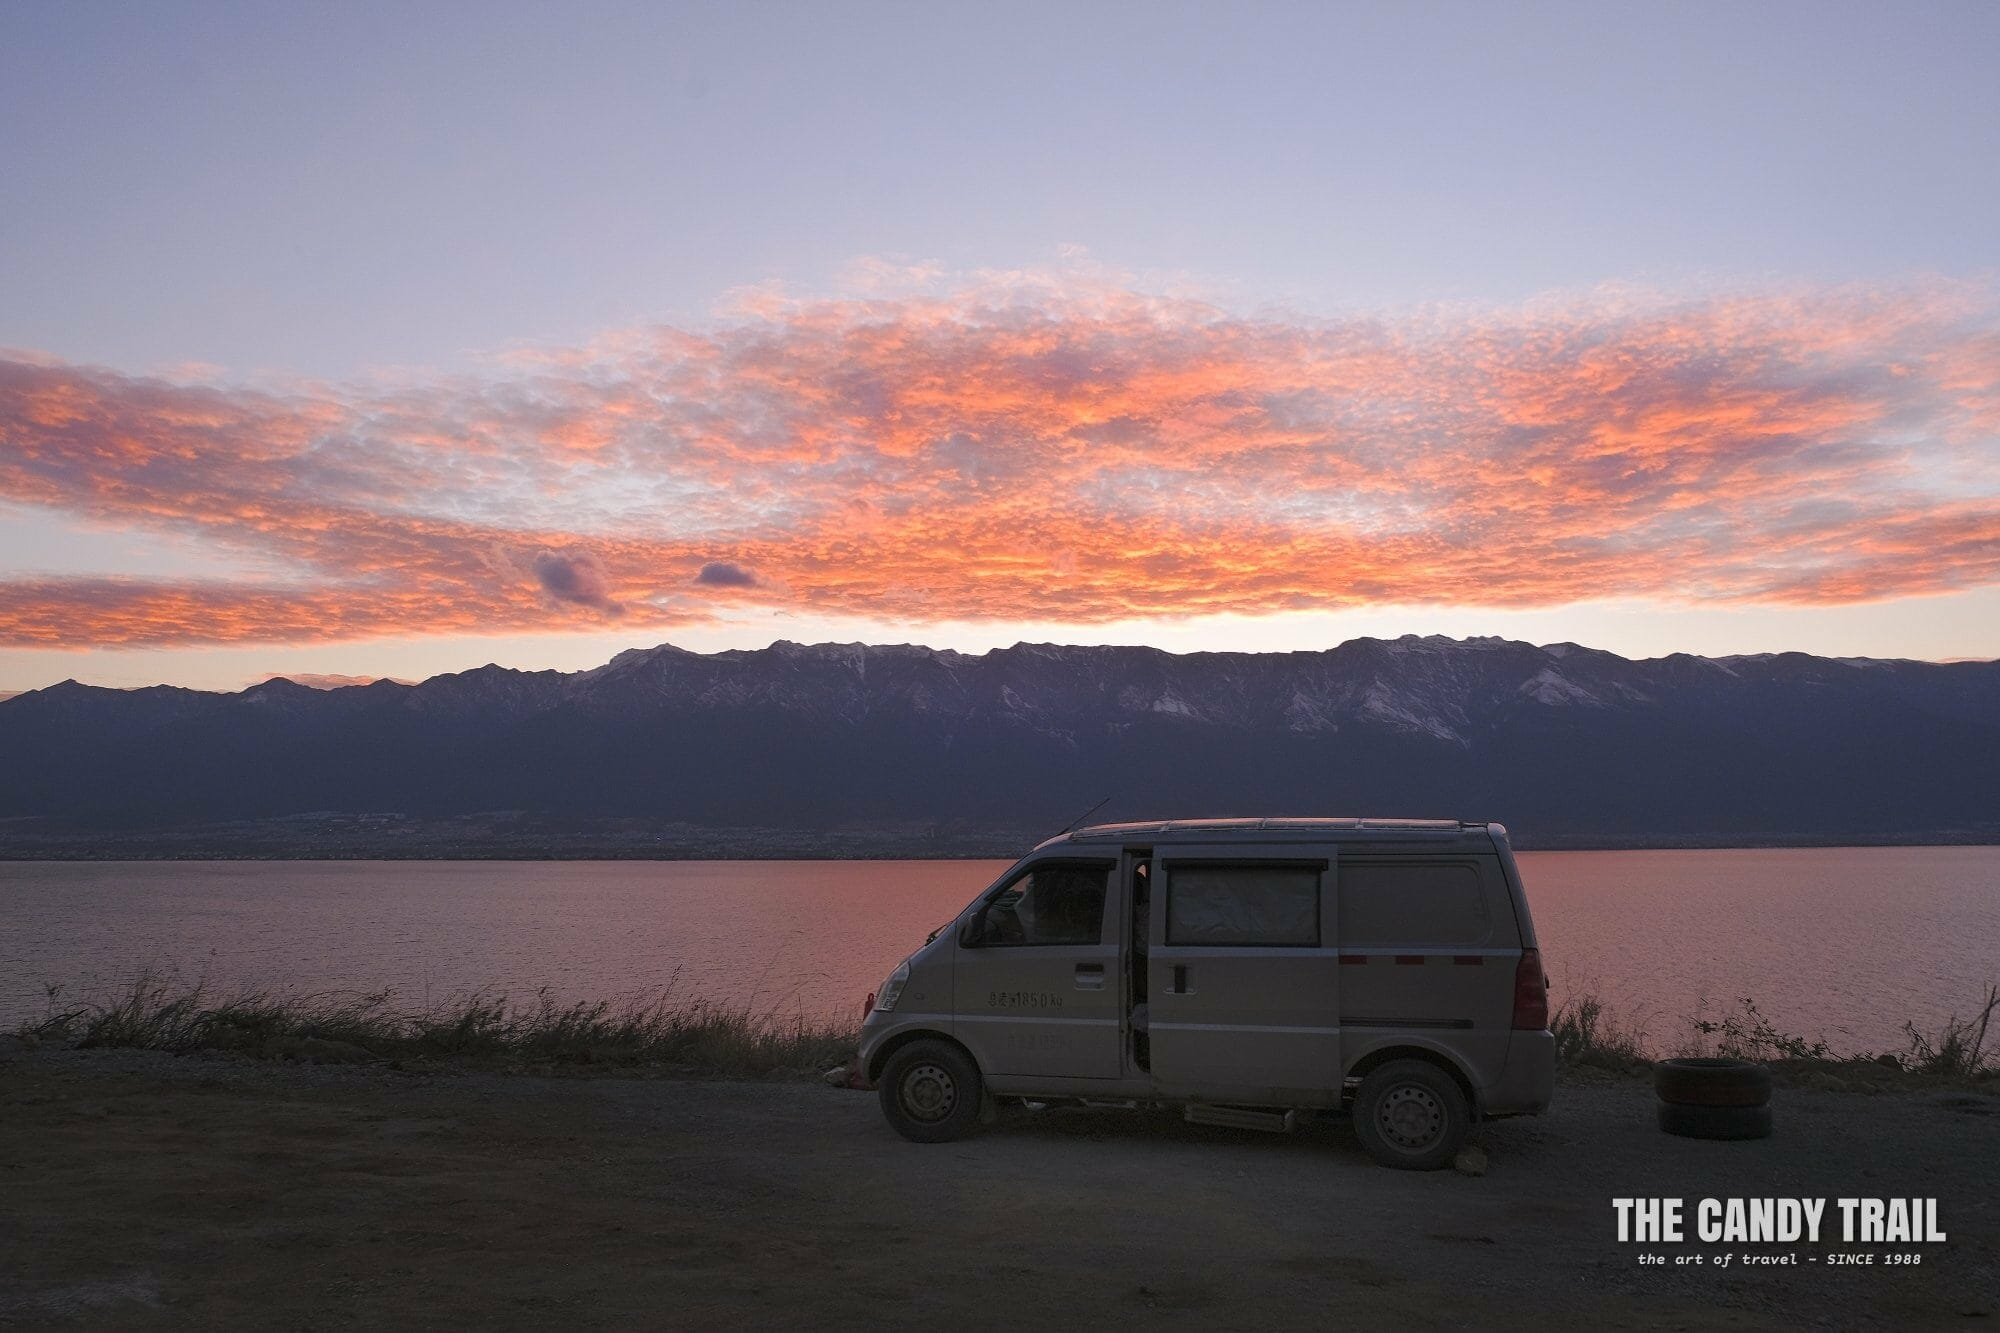 sunset van camping at lake erhai yunnan china